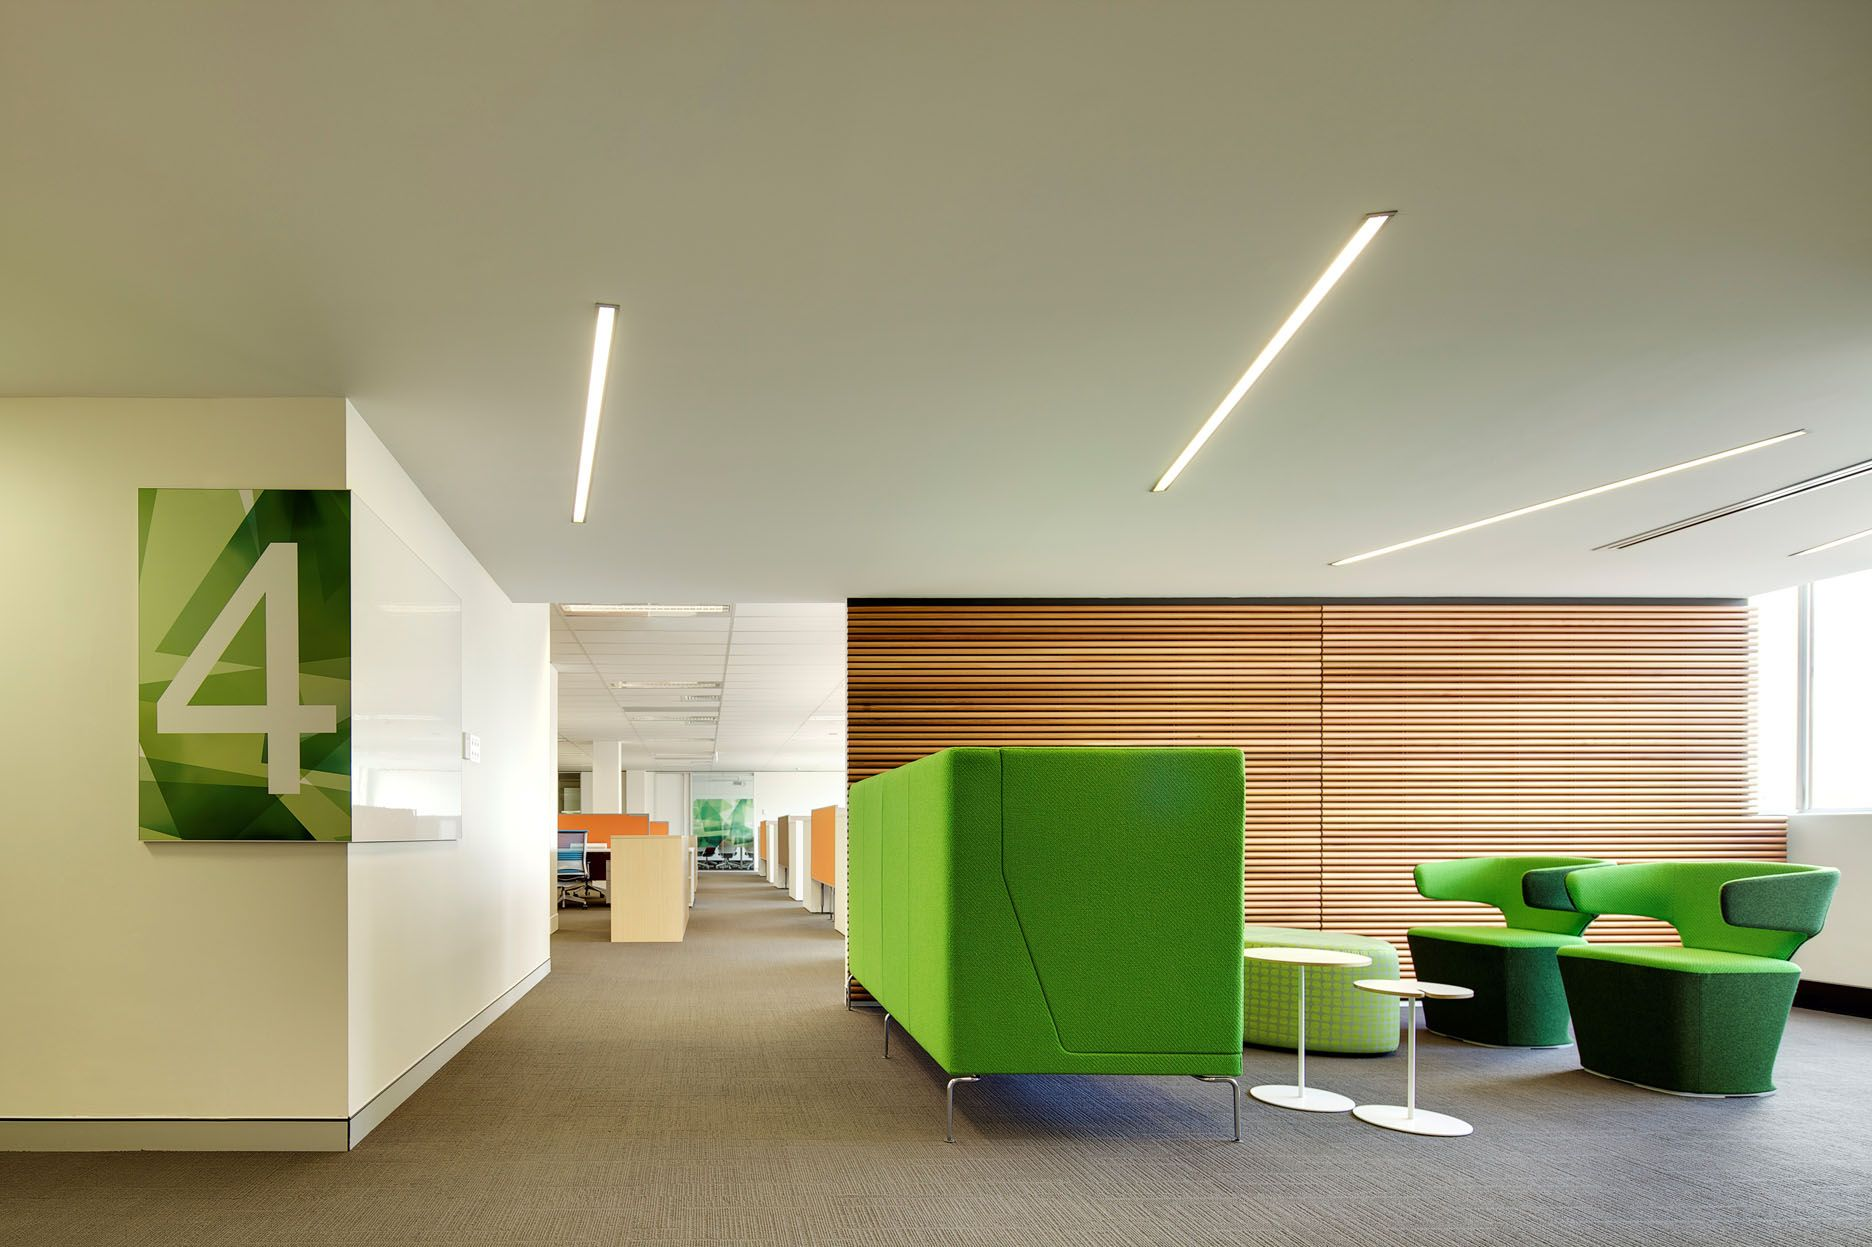 Award Winning Commercial Interior Designers In Perth Contact Us Today For